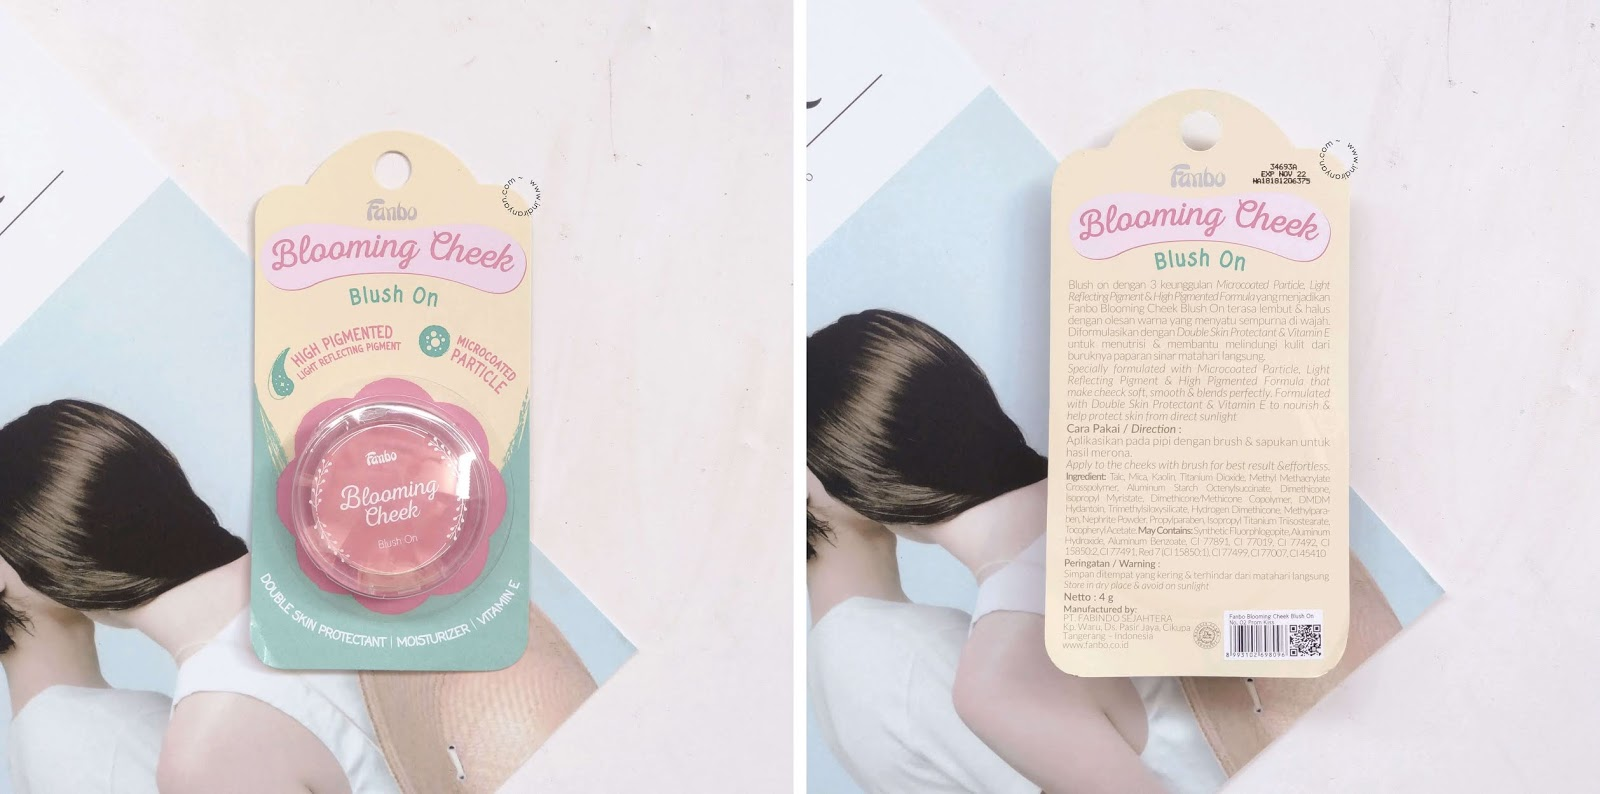 fanbo-blooming-cheek-review